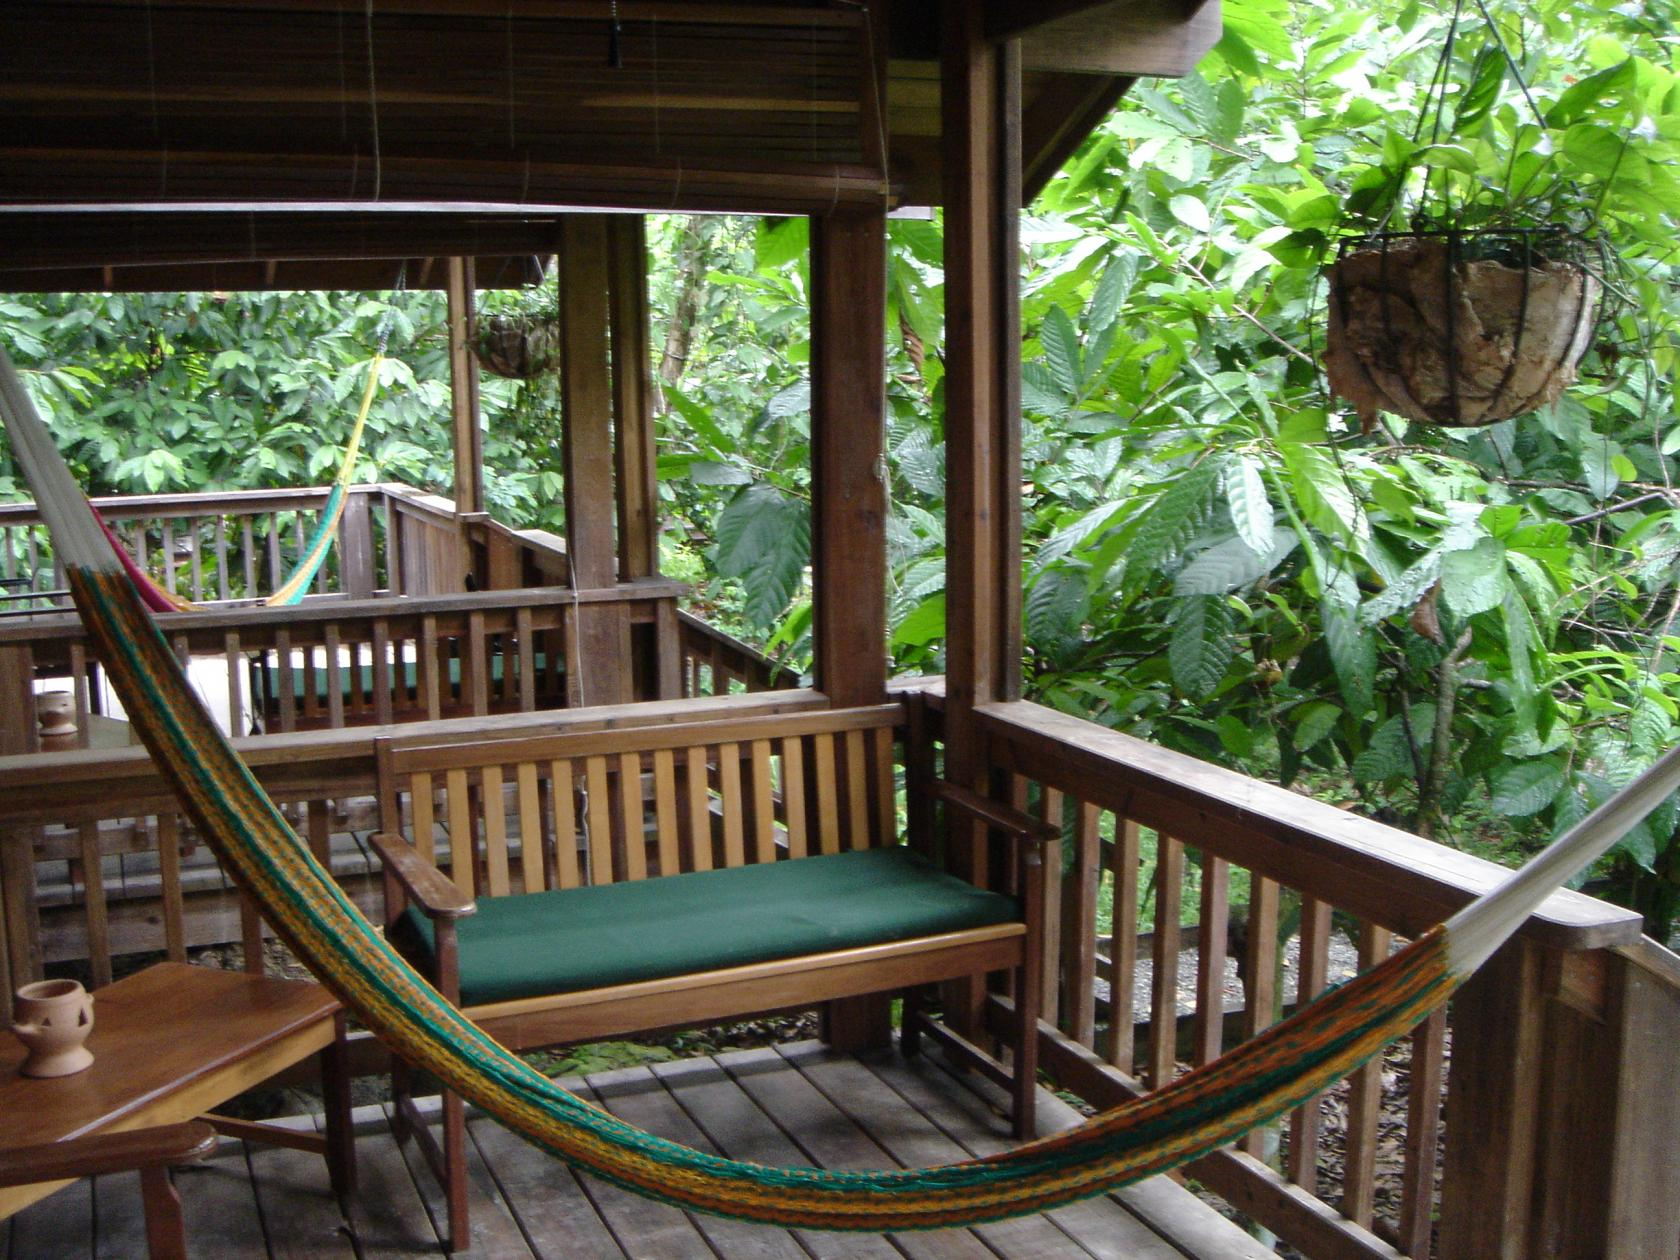 swings furniture hammock wood canvas canyon teal hammocks standing home porch categories free p en outdoors patio in and